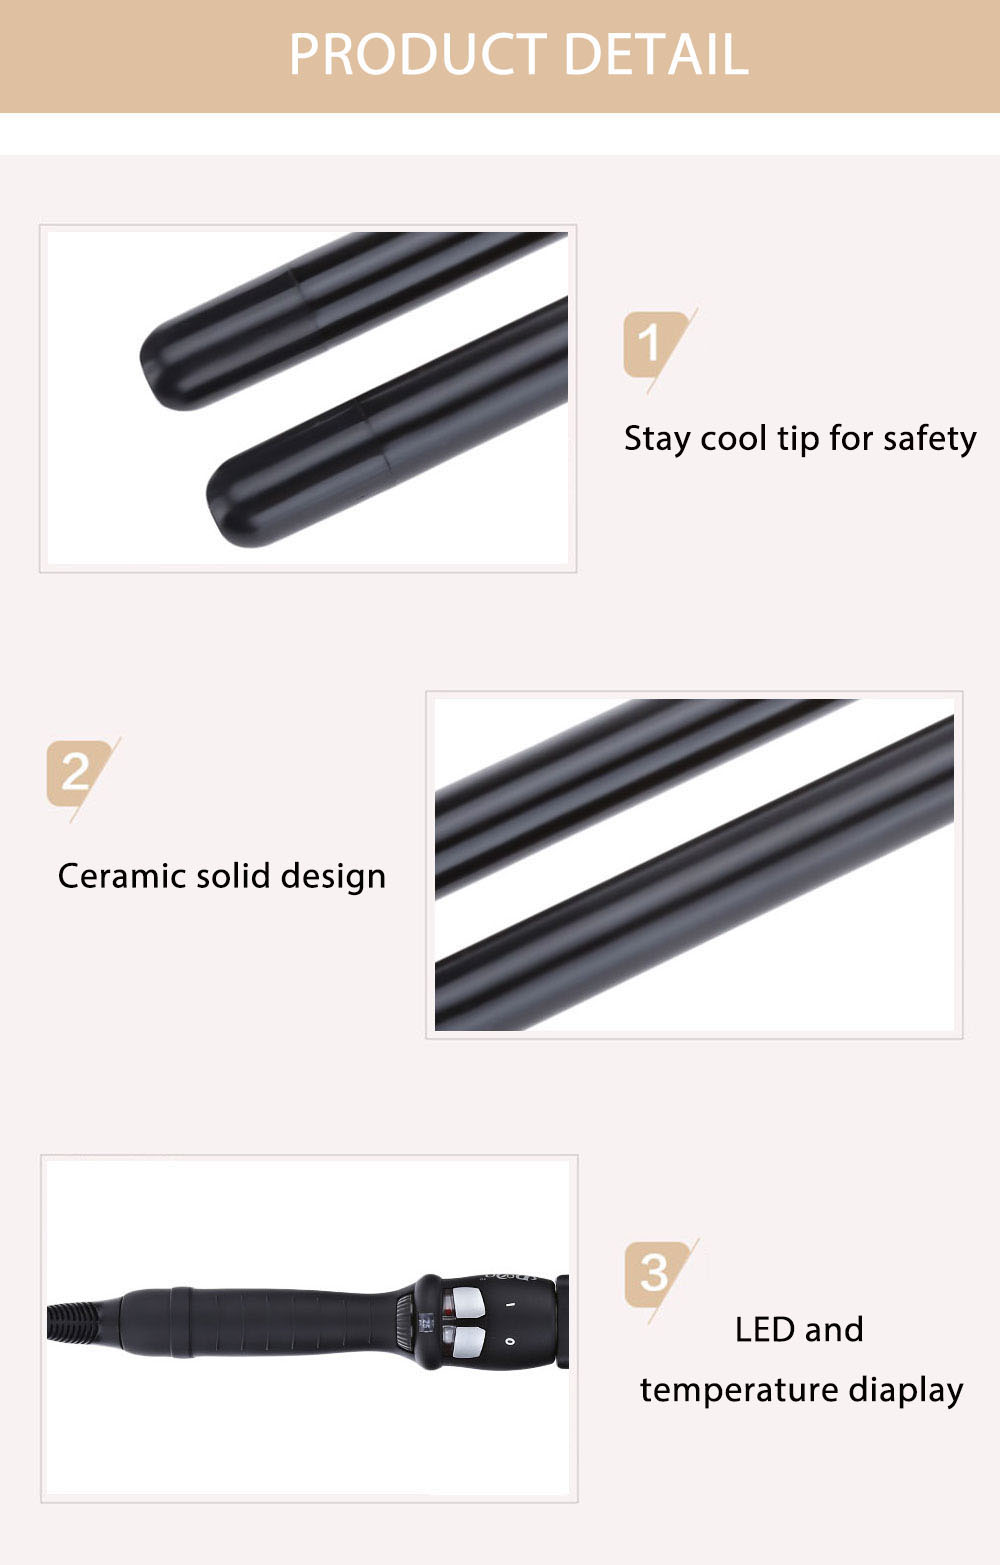 DODO L - 1313D Black Ceramic Fast Heating Hair Curling Iron Double Wand Roller